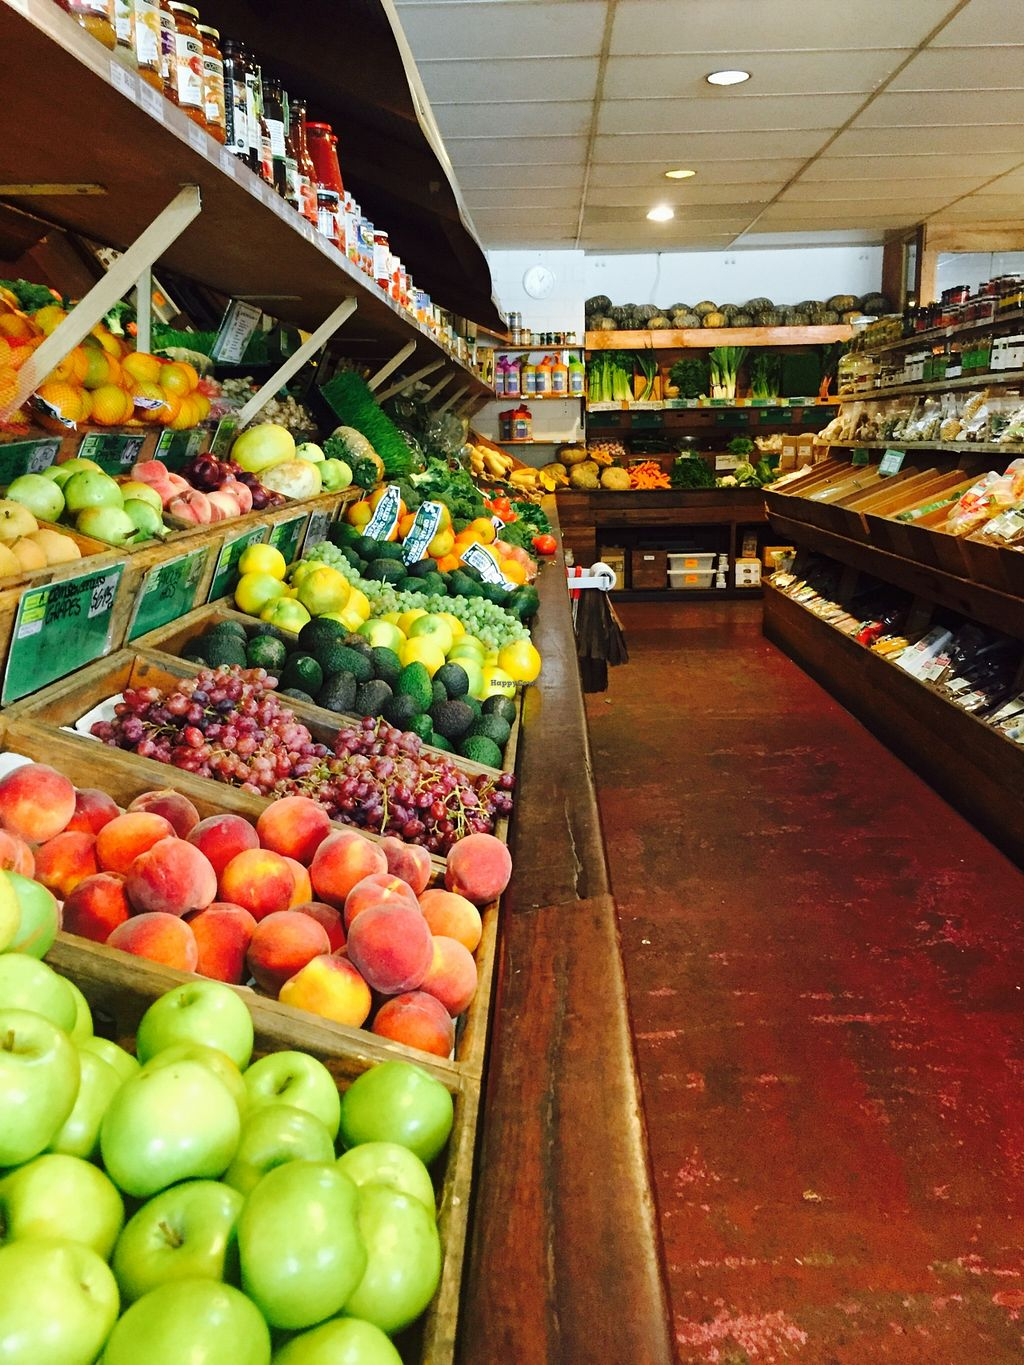 """Photo of Eastfield Natural Foods  by <a href=""""/members/profile/karlaess"""">karlaess</a> <br/>Fresh produce <br/> February 9, 2016  - <a href='/contact/abuse/image/65580/135651'>Report</a>"""